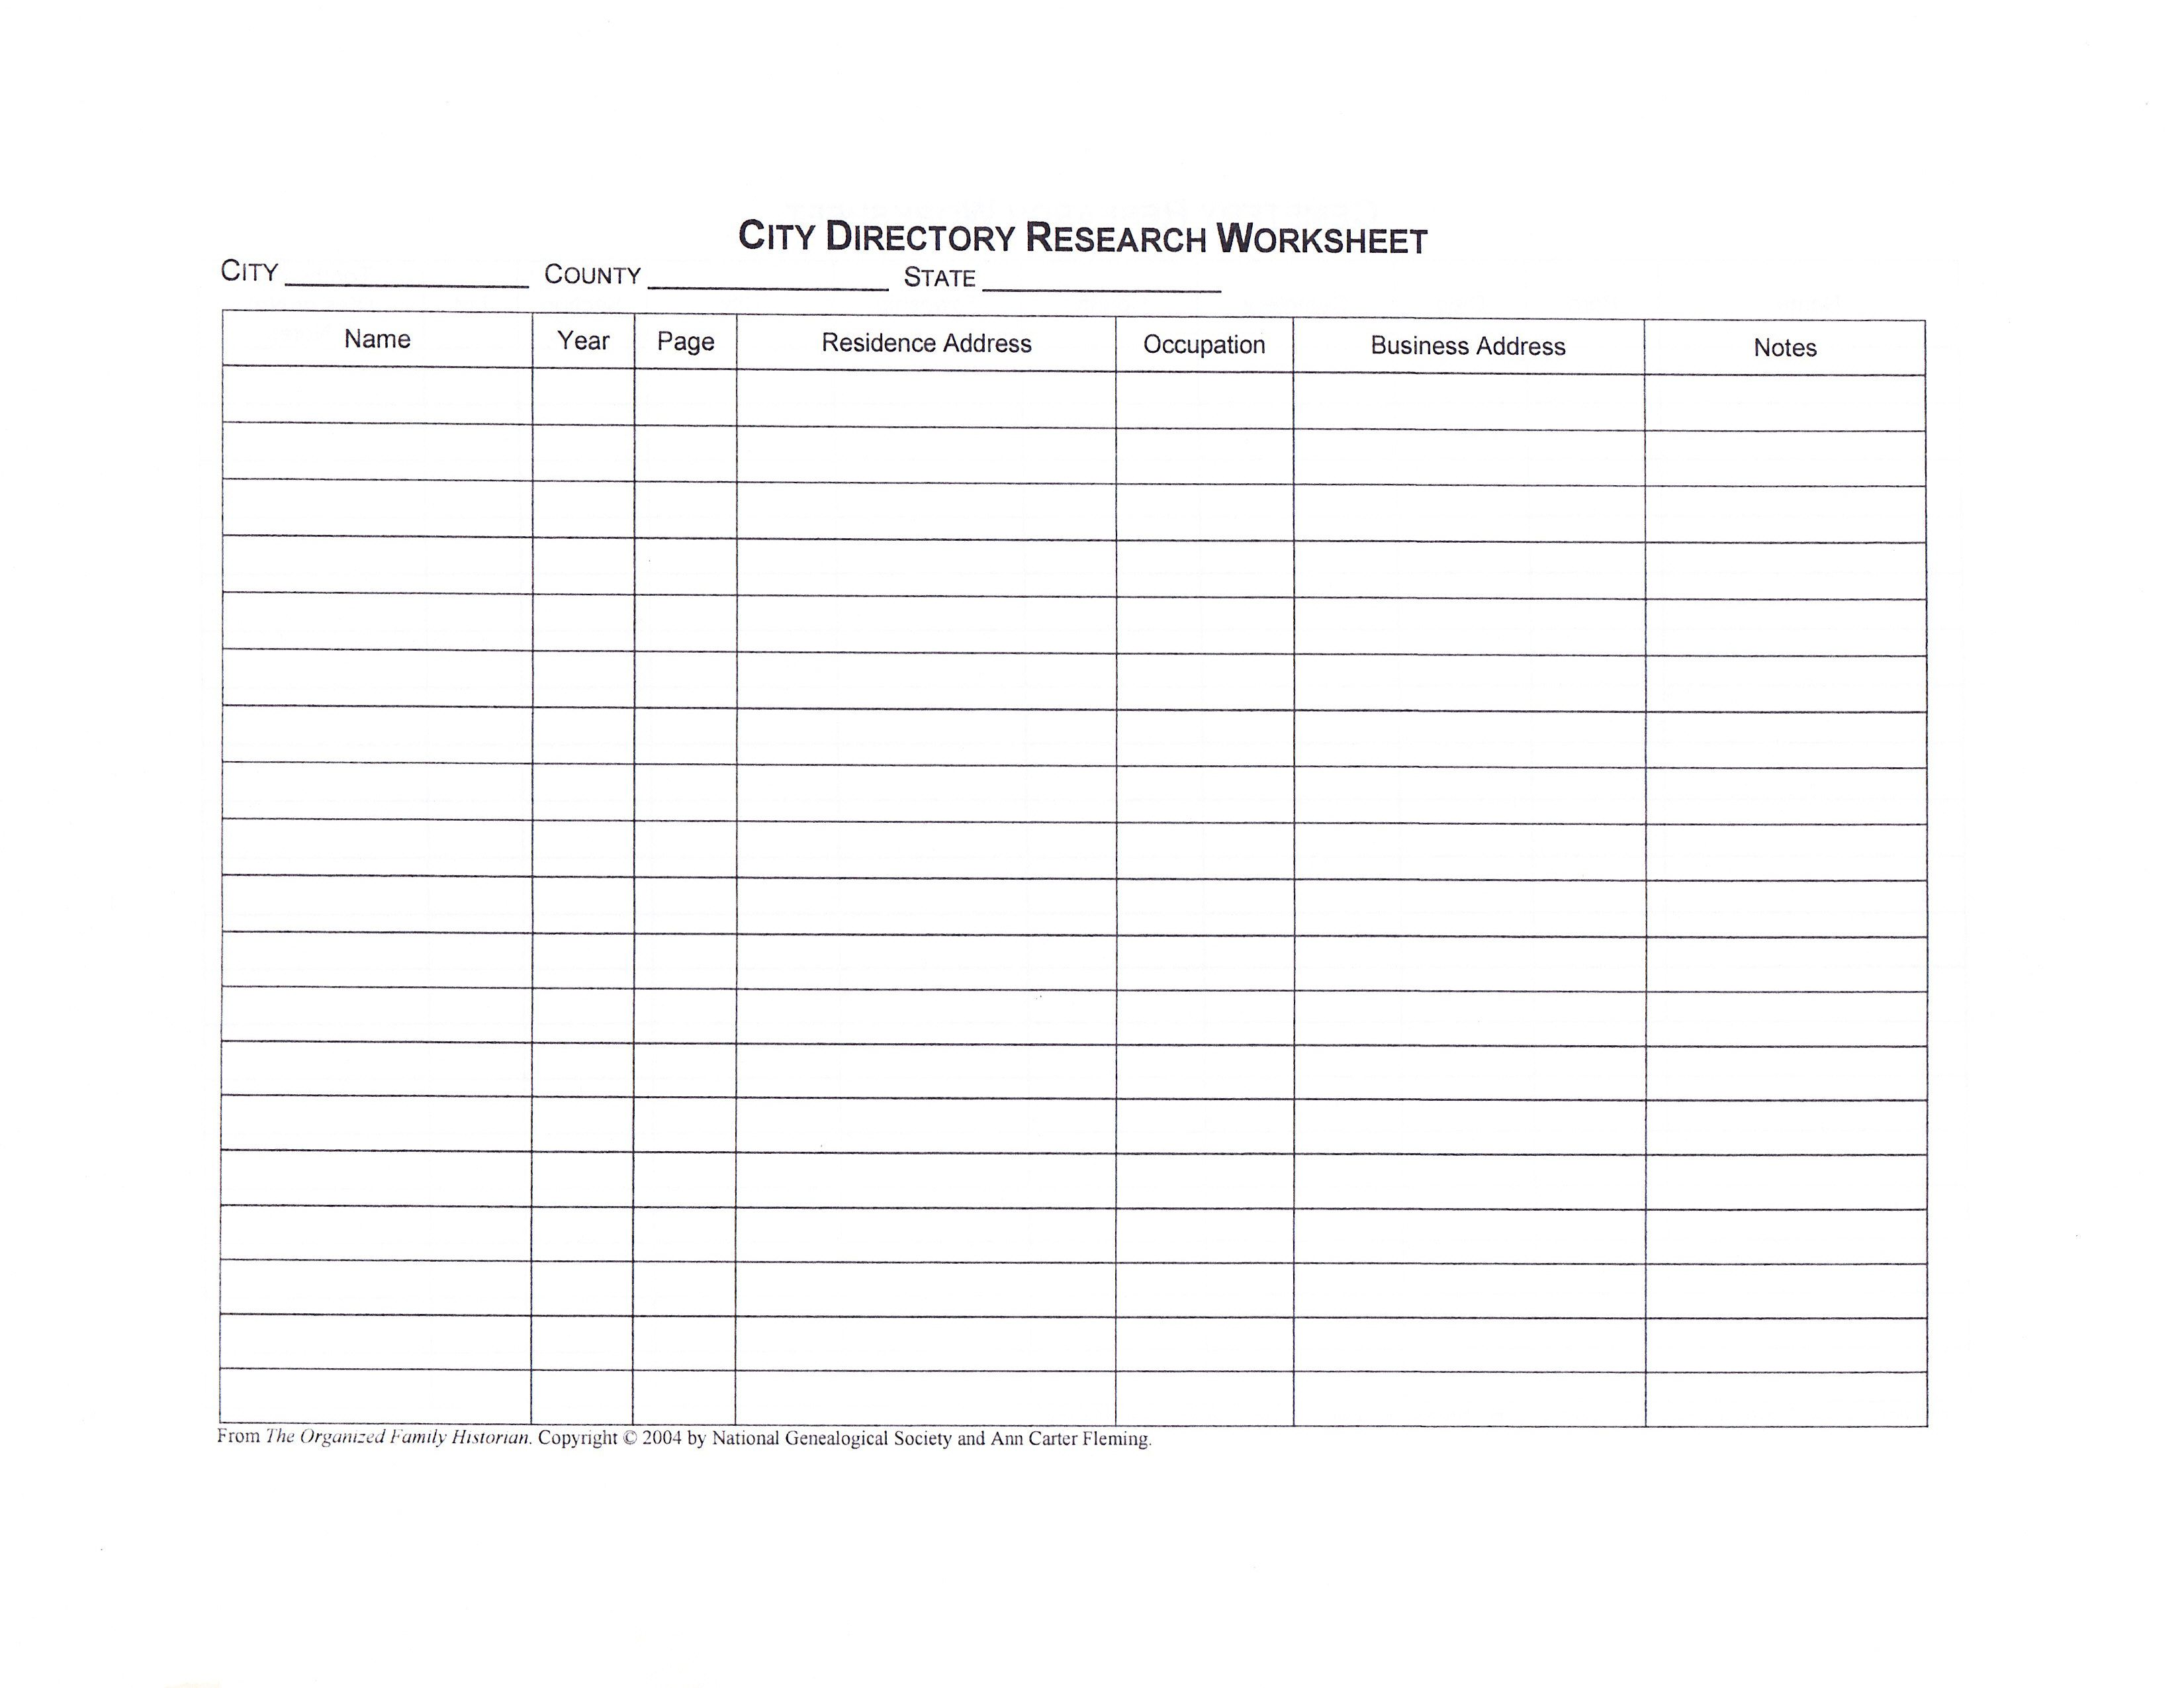 City Directory Research Worksheet